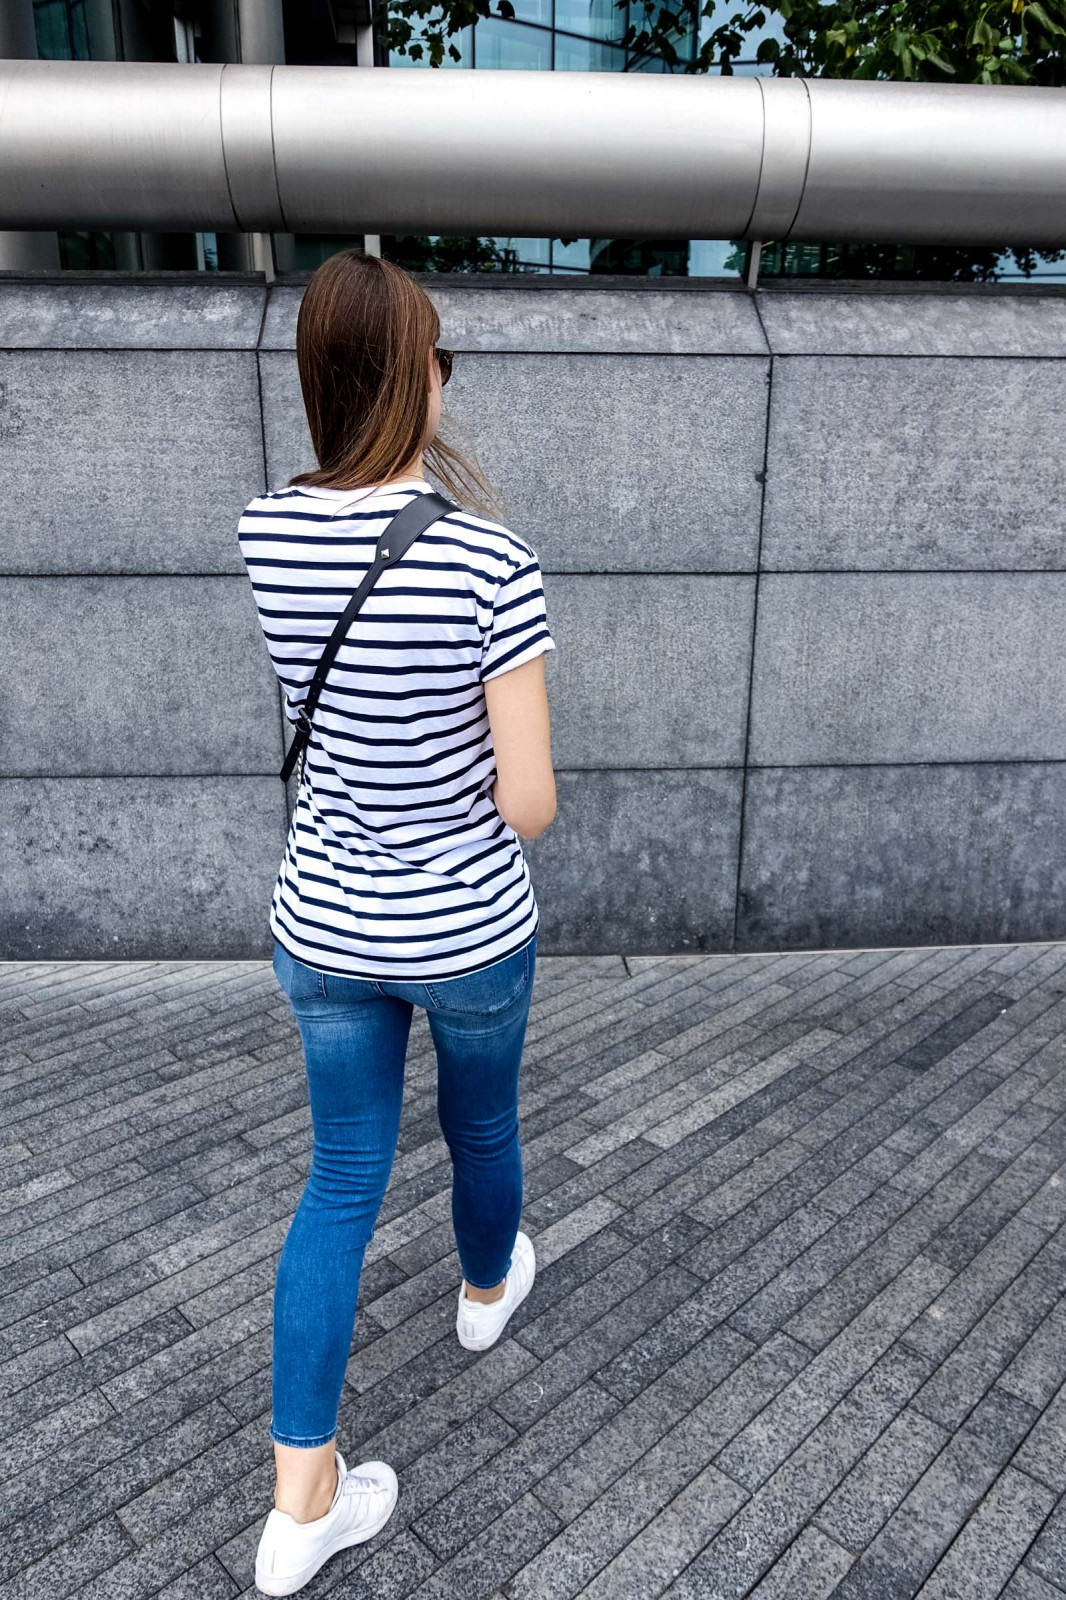 Einfaches Reise Outfit